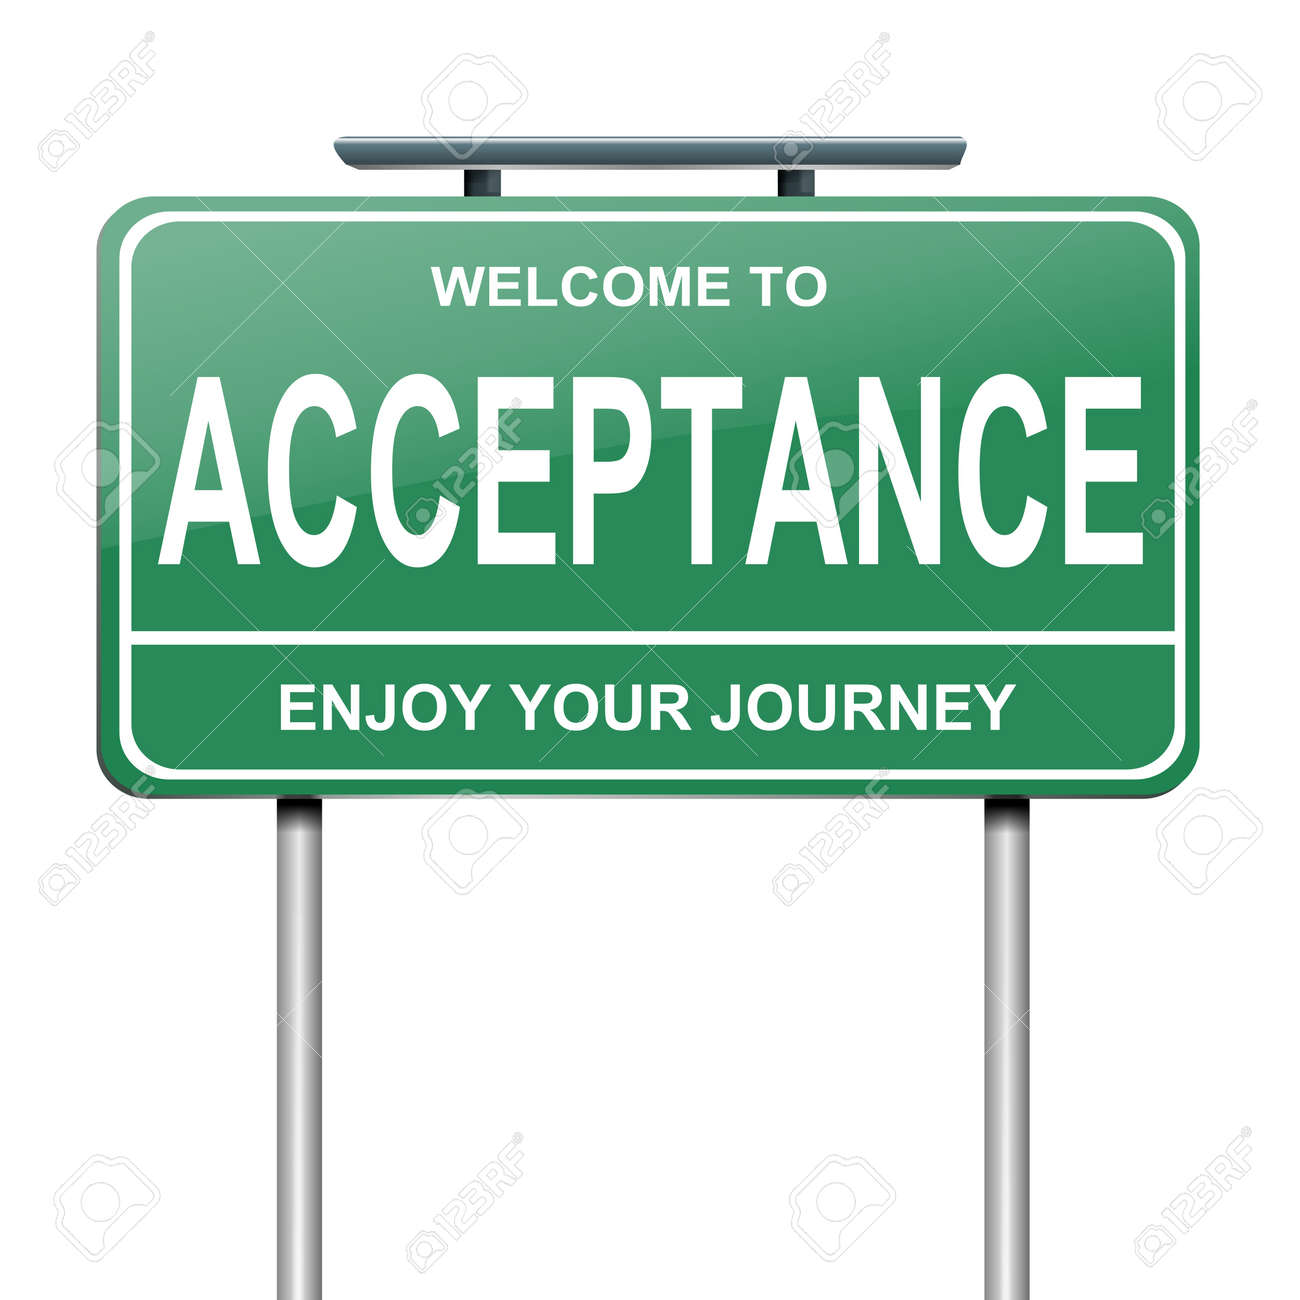 Illustration depicting a green roadsign with an acceptance concept  White background Stock Photo - 14415742